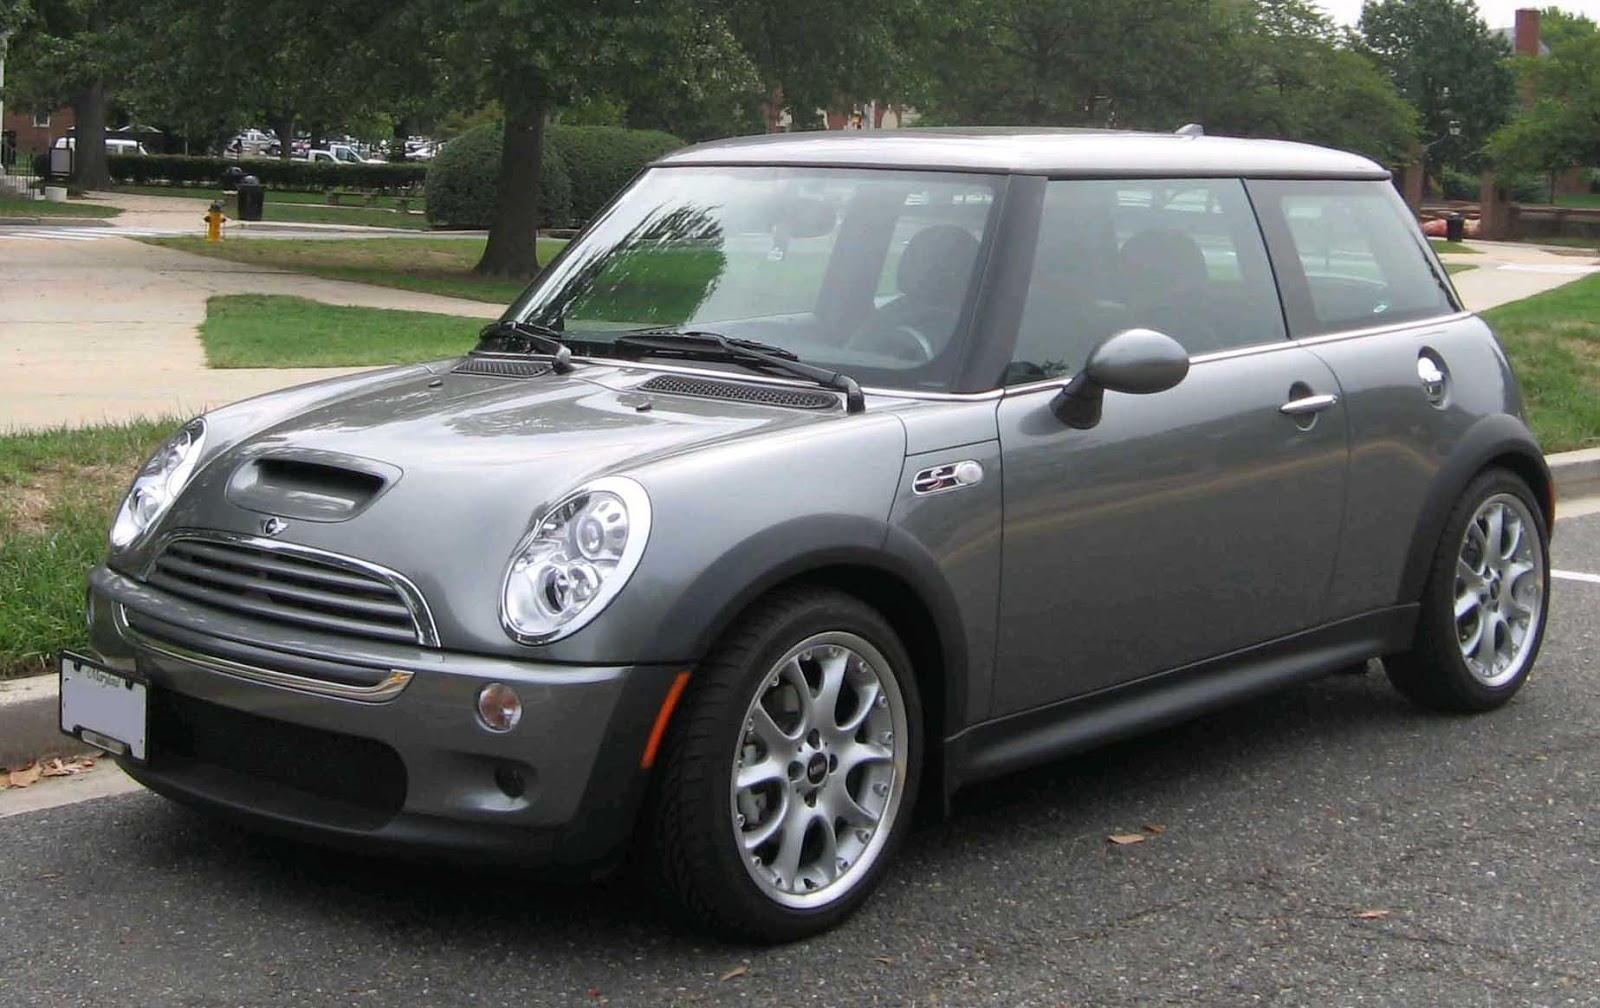 2014 mini cooper s car review car wallpaper collections. Black Bedroom Furniture Sets. Home Design Ideas